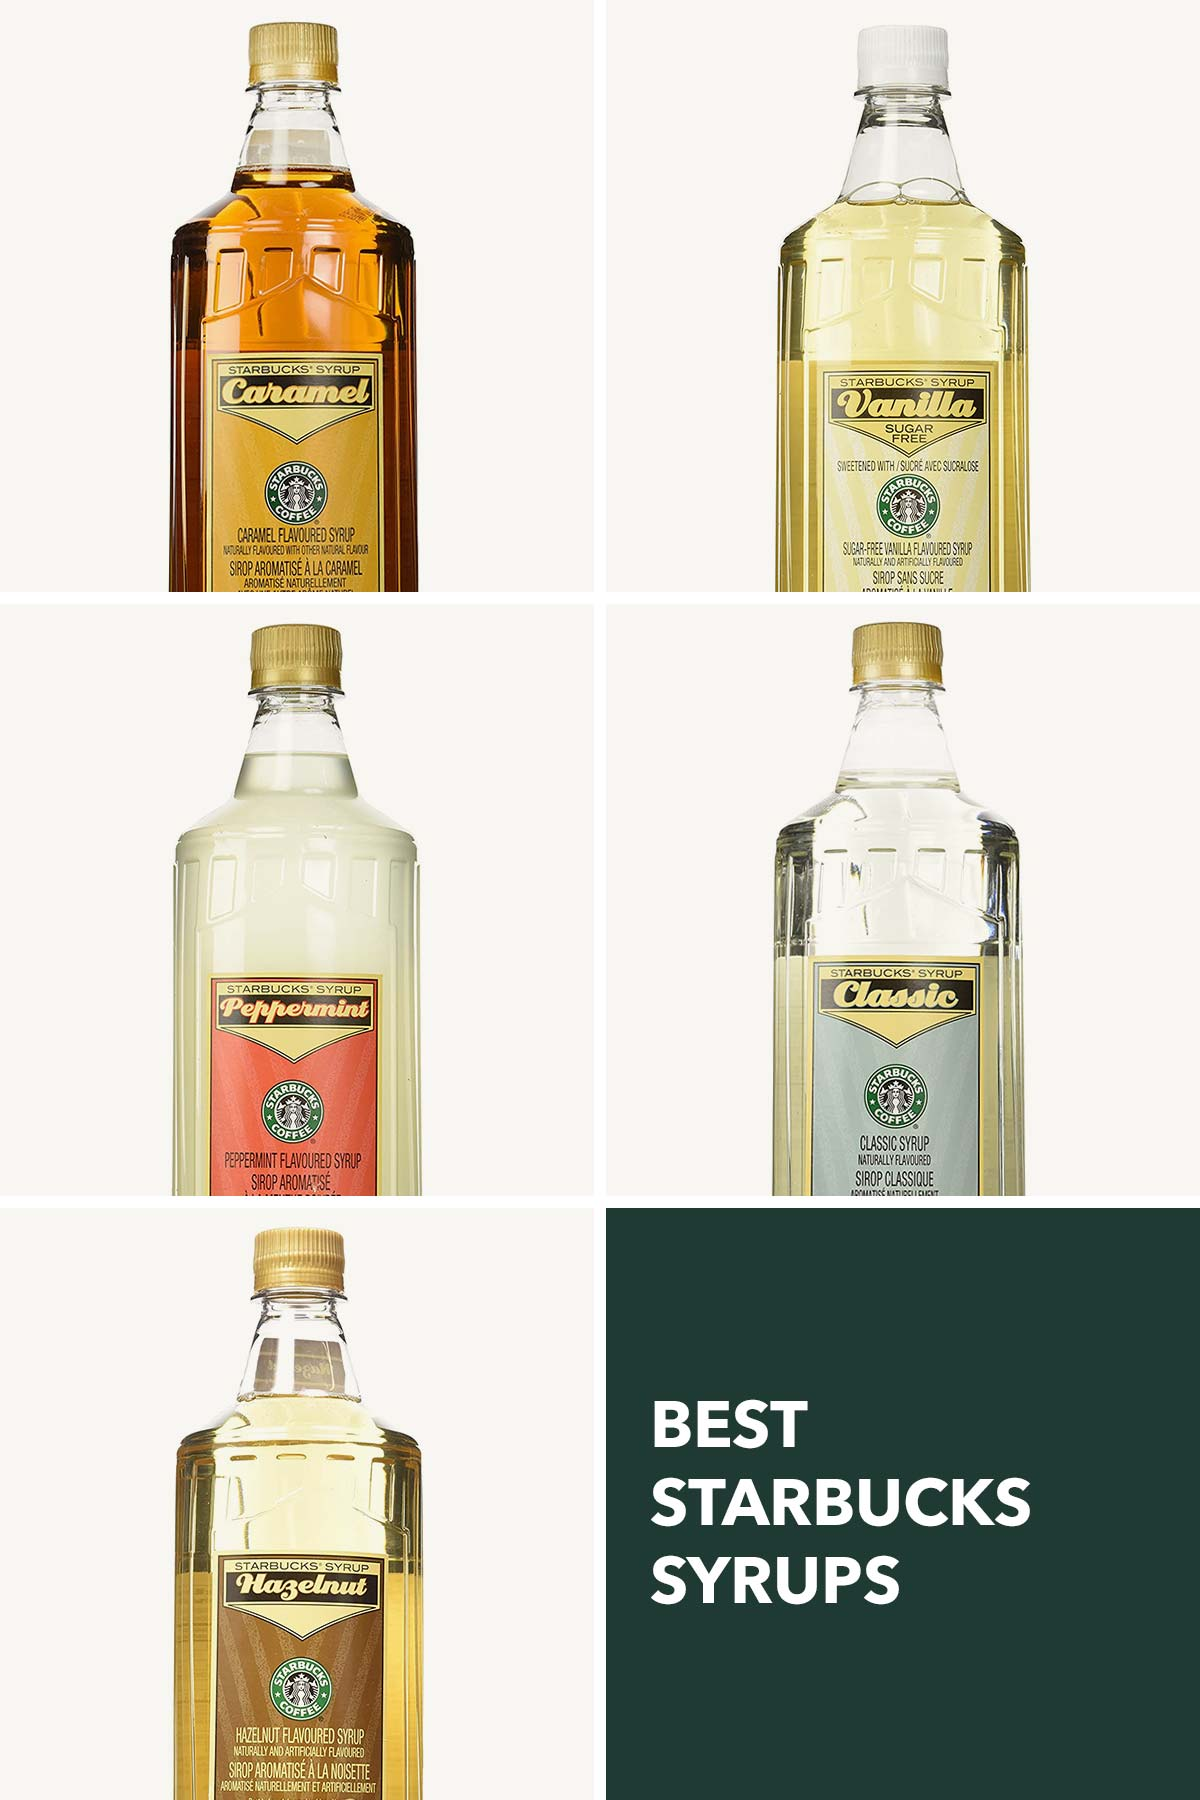 A collage showing five Starbucks syrups.